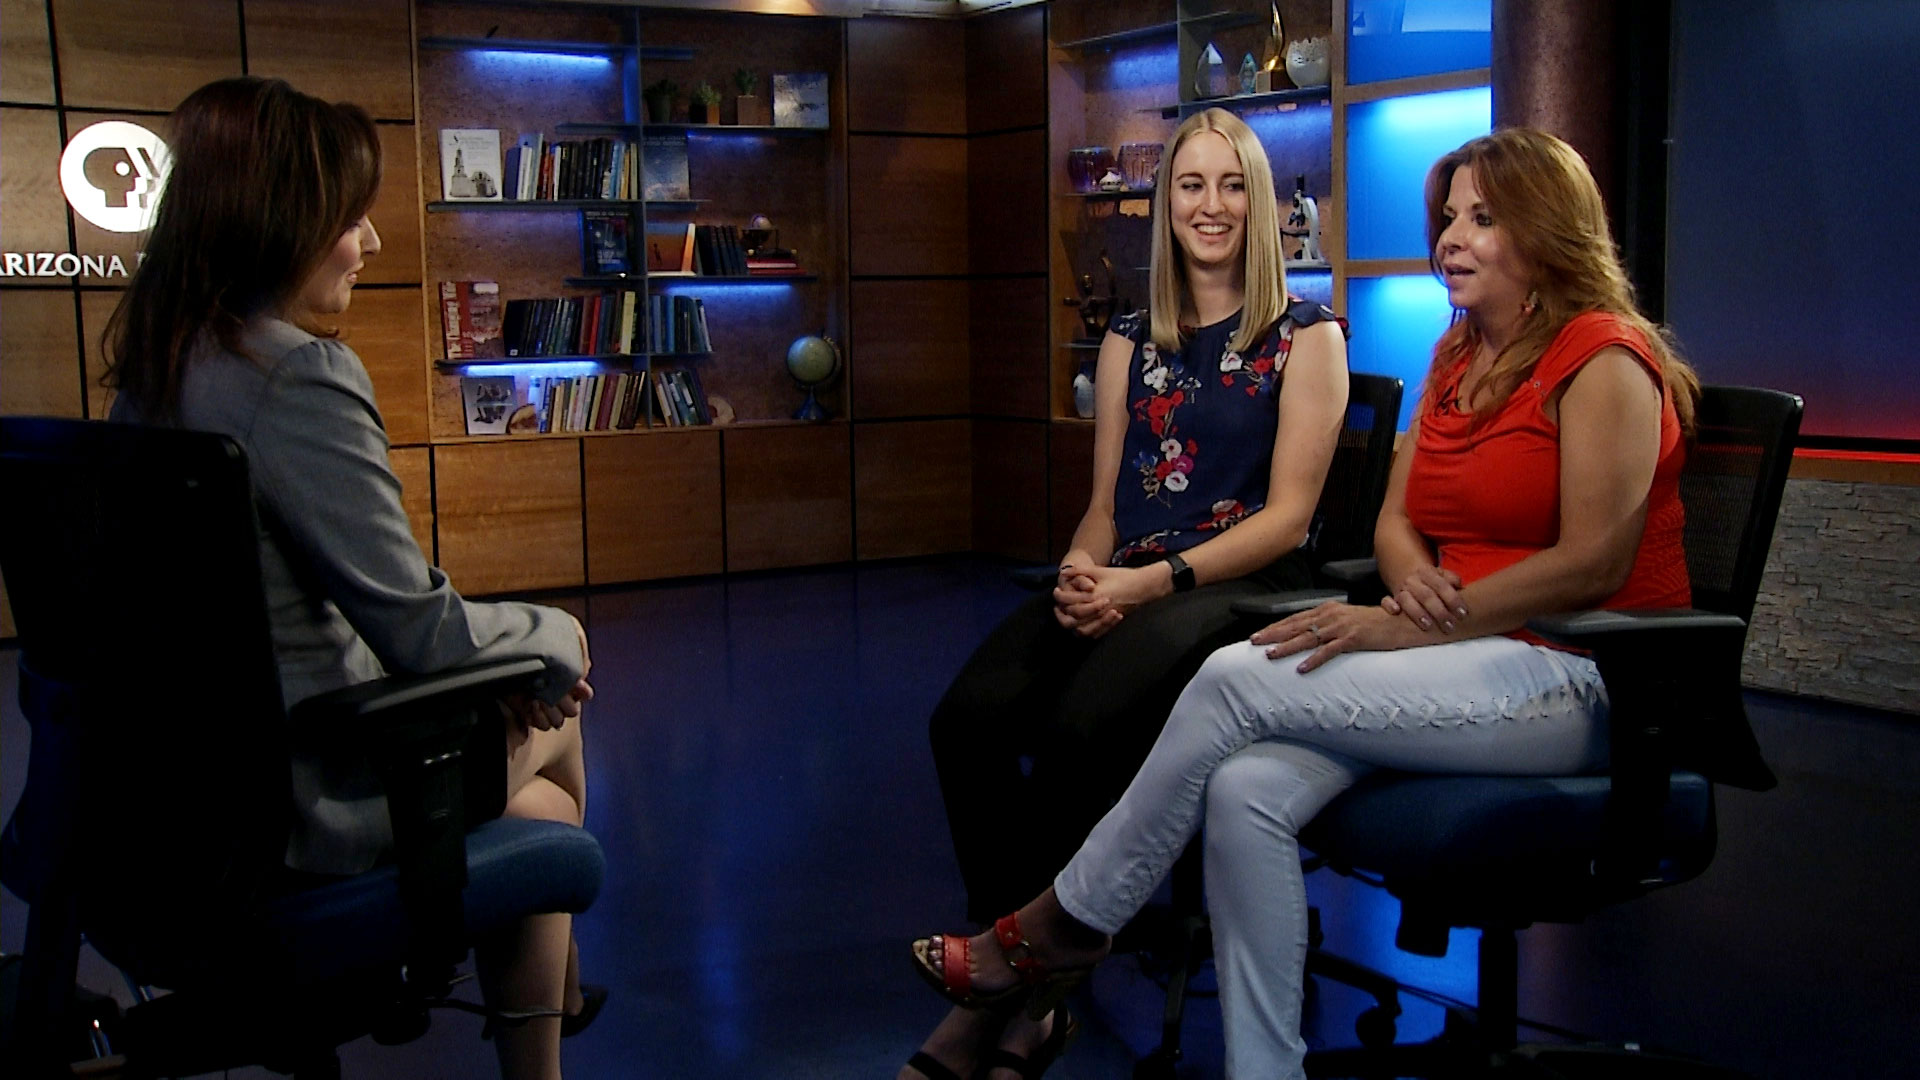 Caitlin Brenton (left) and Chauna Mae sit for an interview with Arizona 360 host Lorraine Rivera at Arizona Public Media to discuss their experiences with the Arizona Teachers Academy on July 23, 2019.